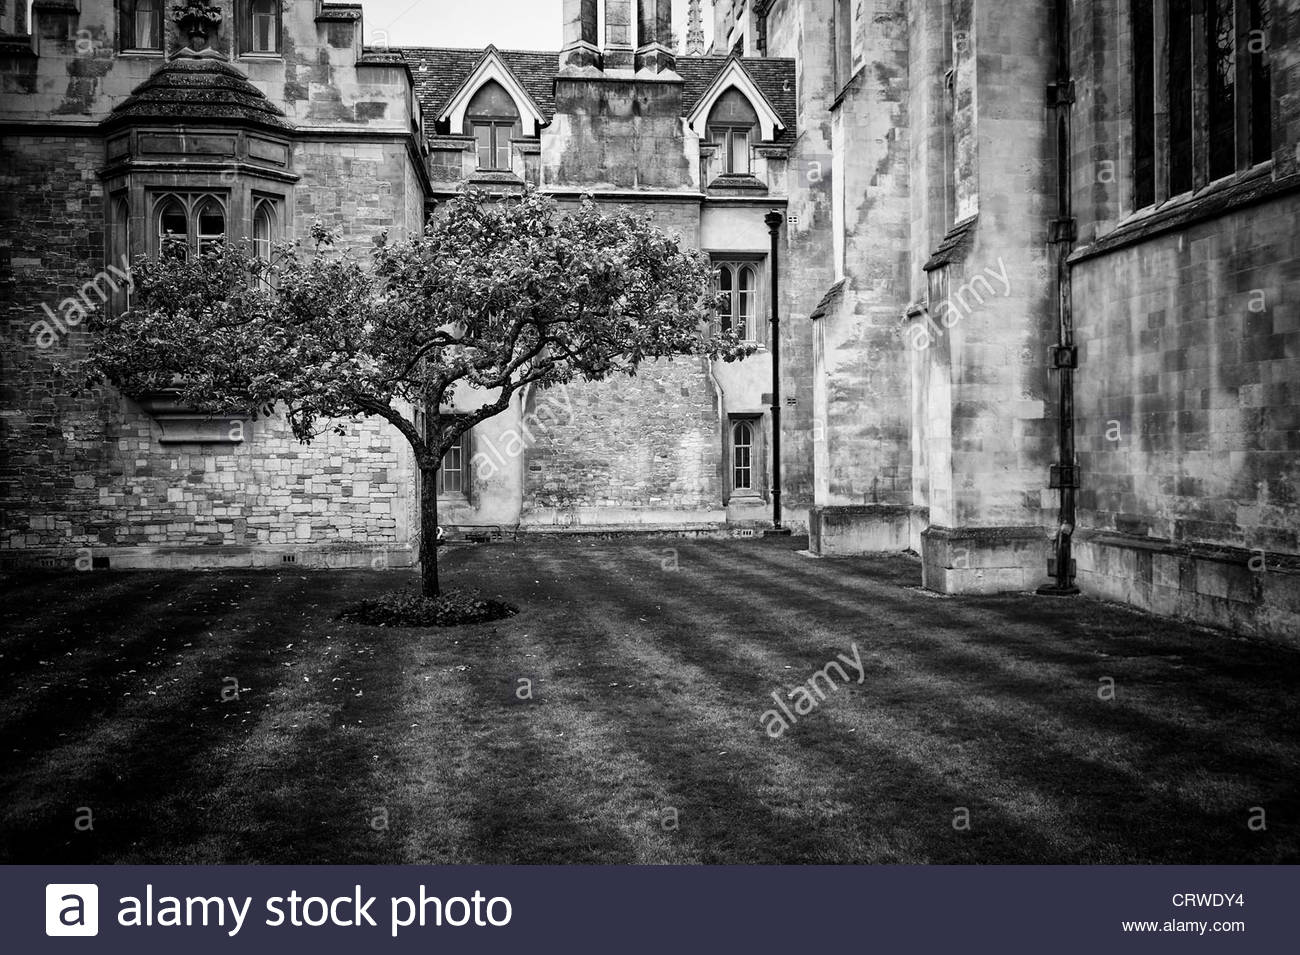 Sir isaac newton apple tree cambridge em preto e branco foto imagem sir isaac newton apple tree cambridge em preto e branco thecheapjerseys Image collections